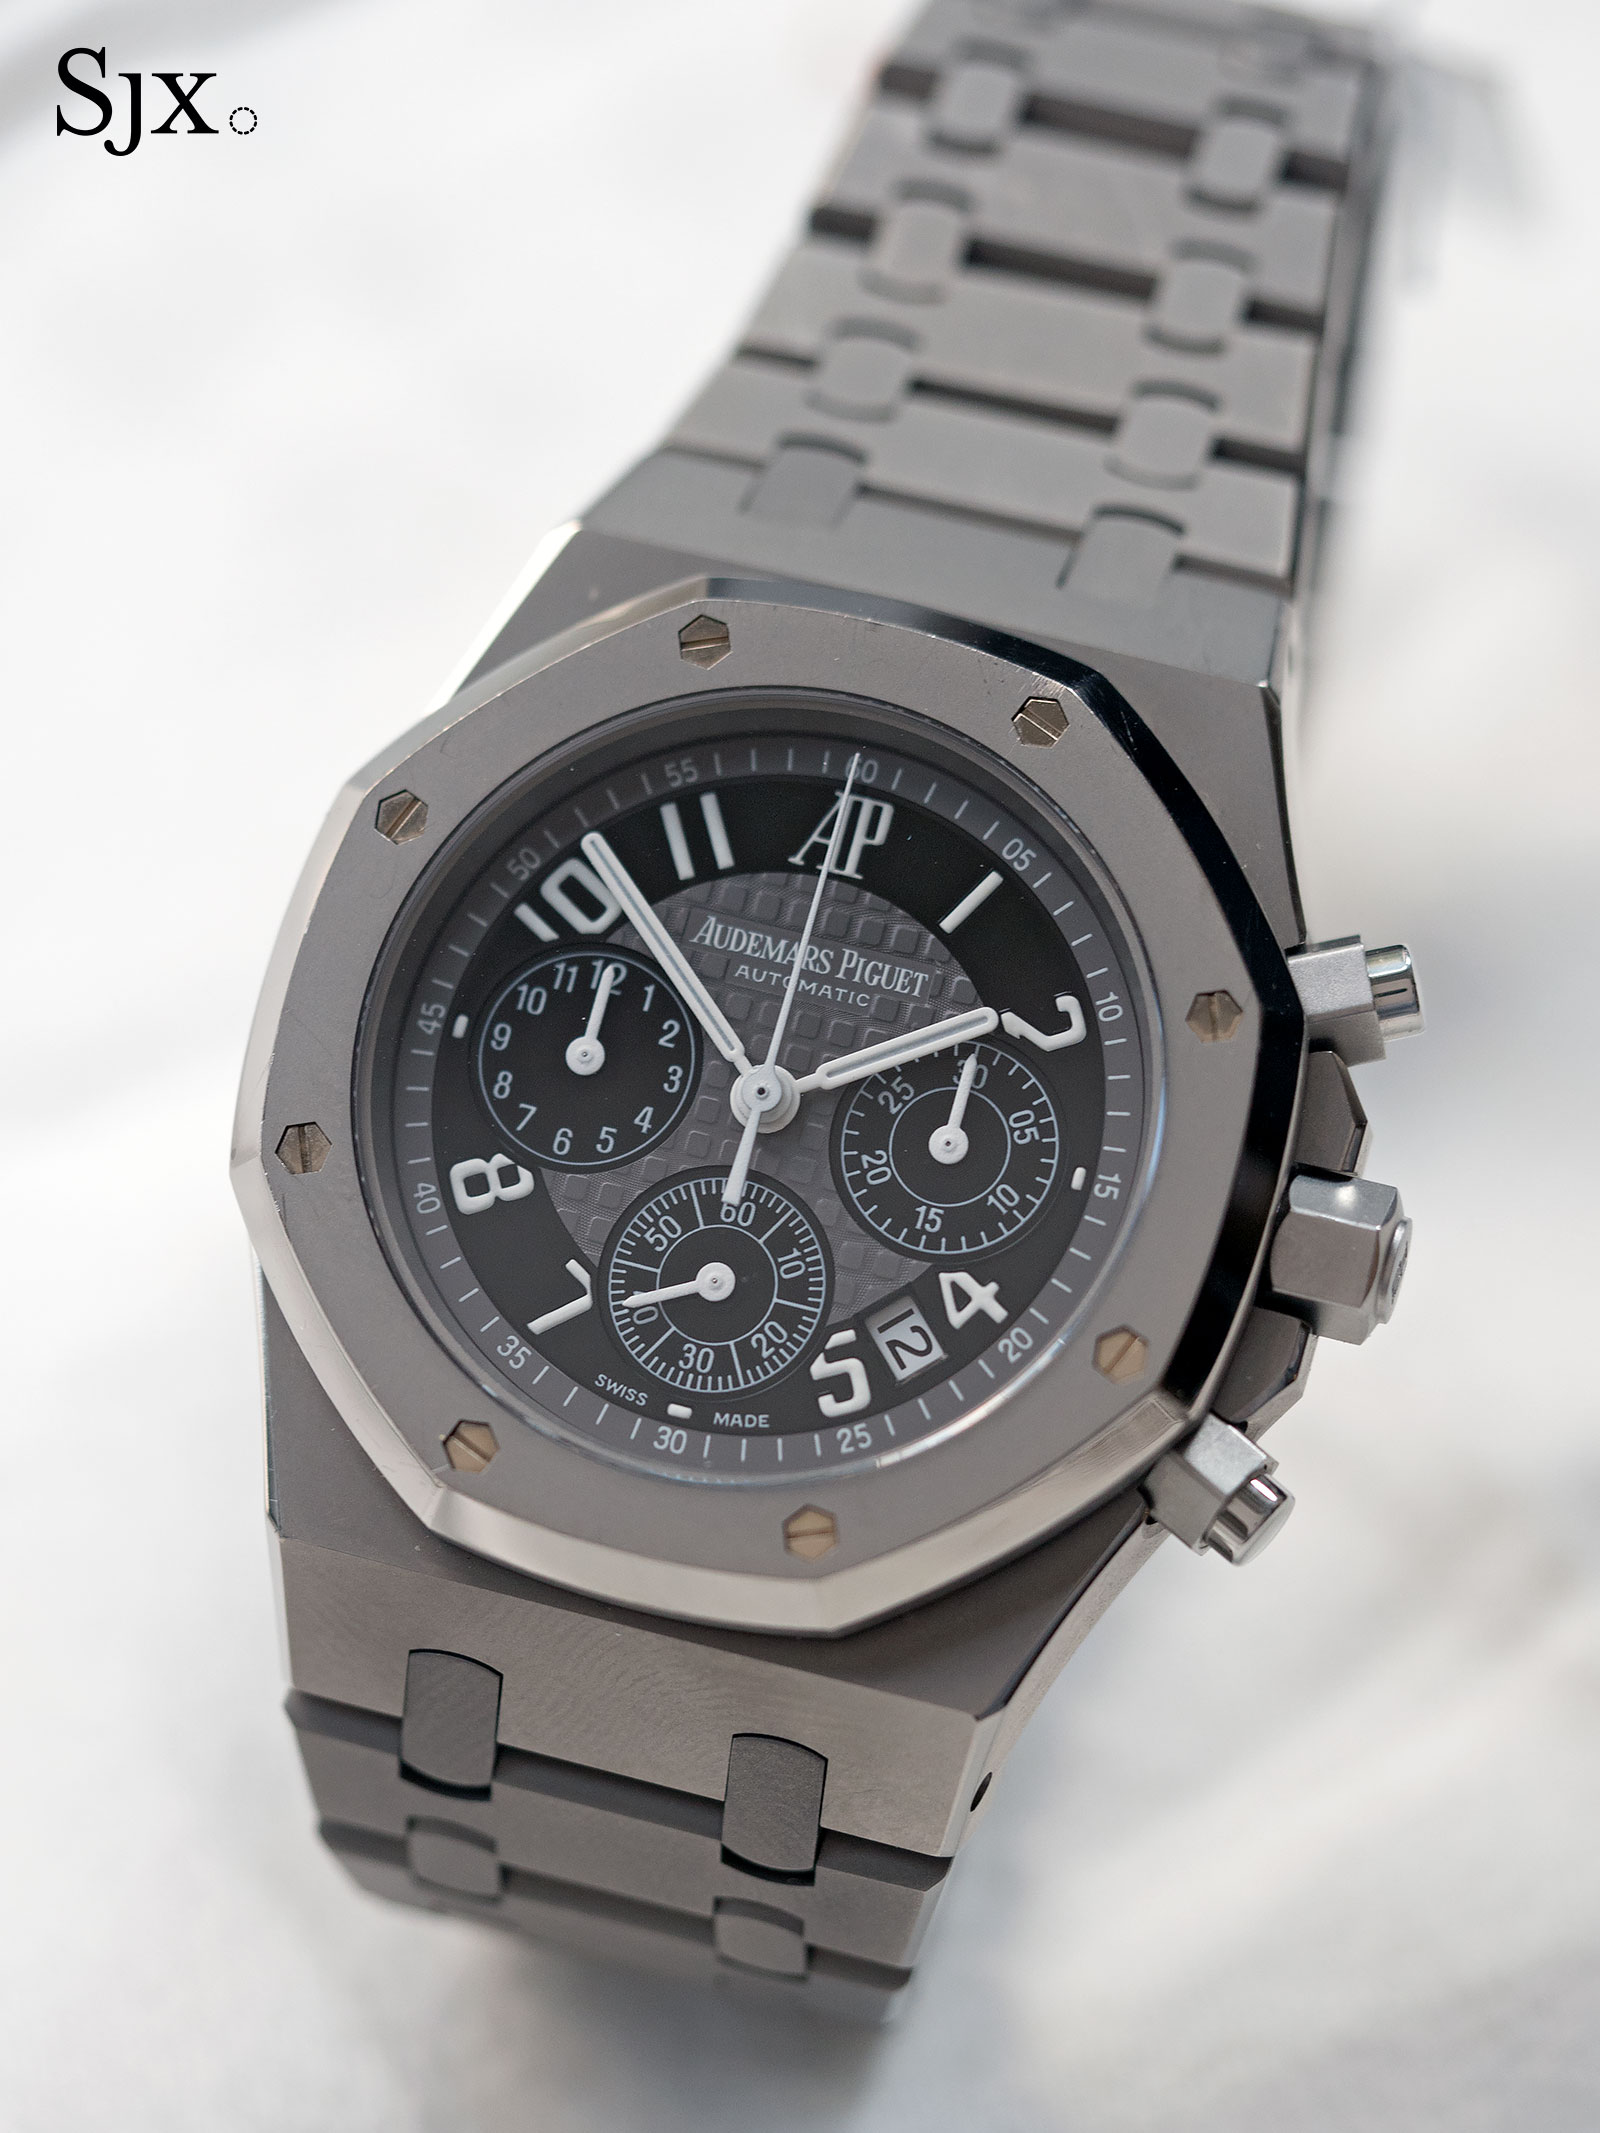 Audemars Piguet Royal Oak Chrono La Boutique Paris 1